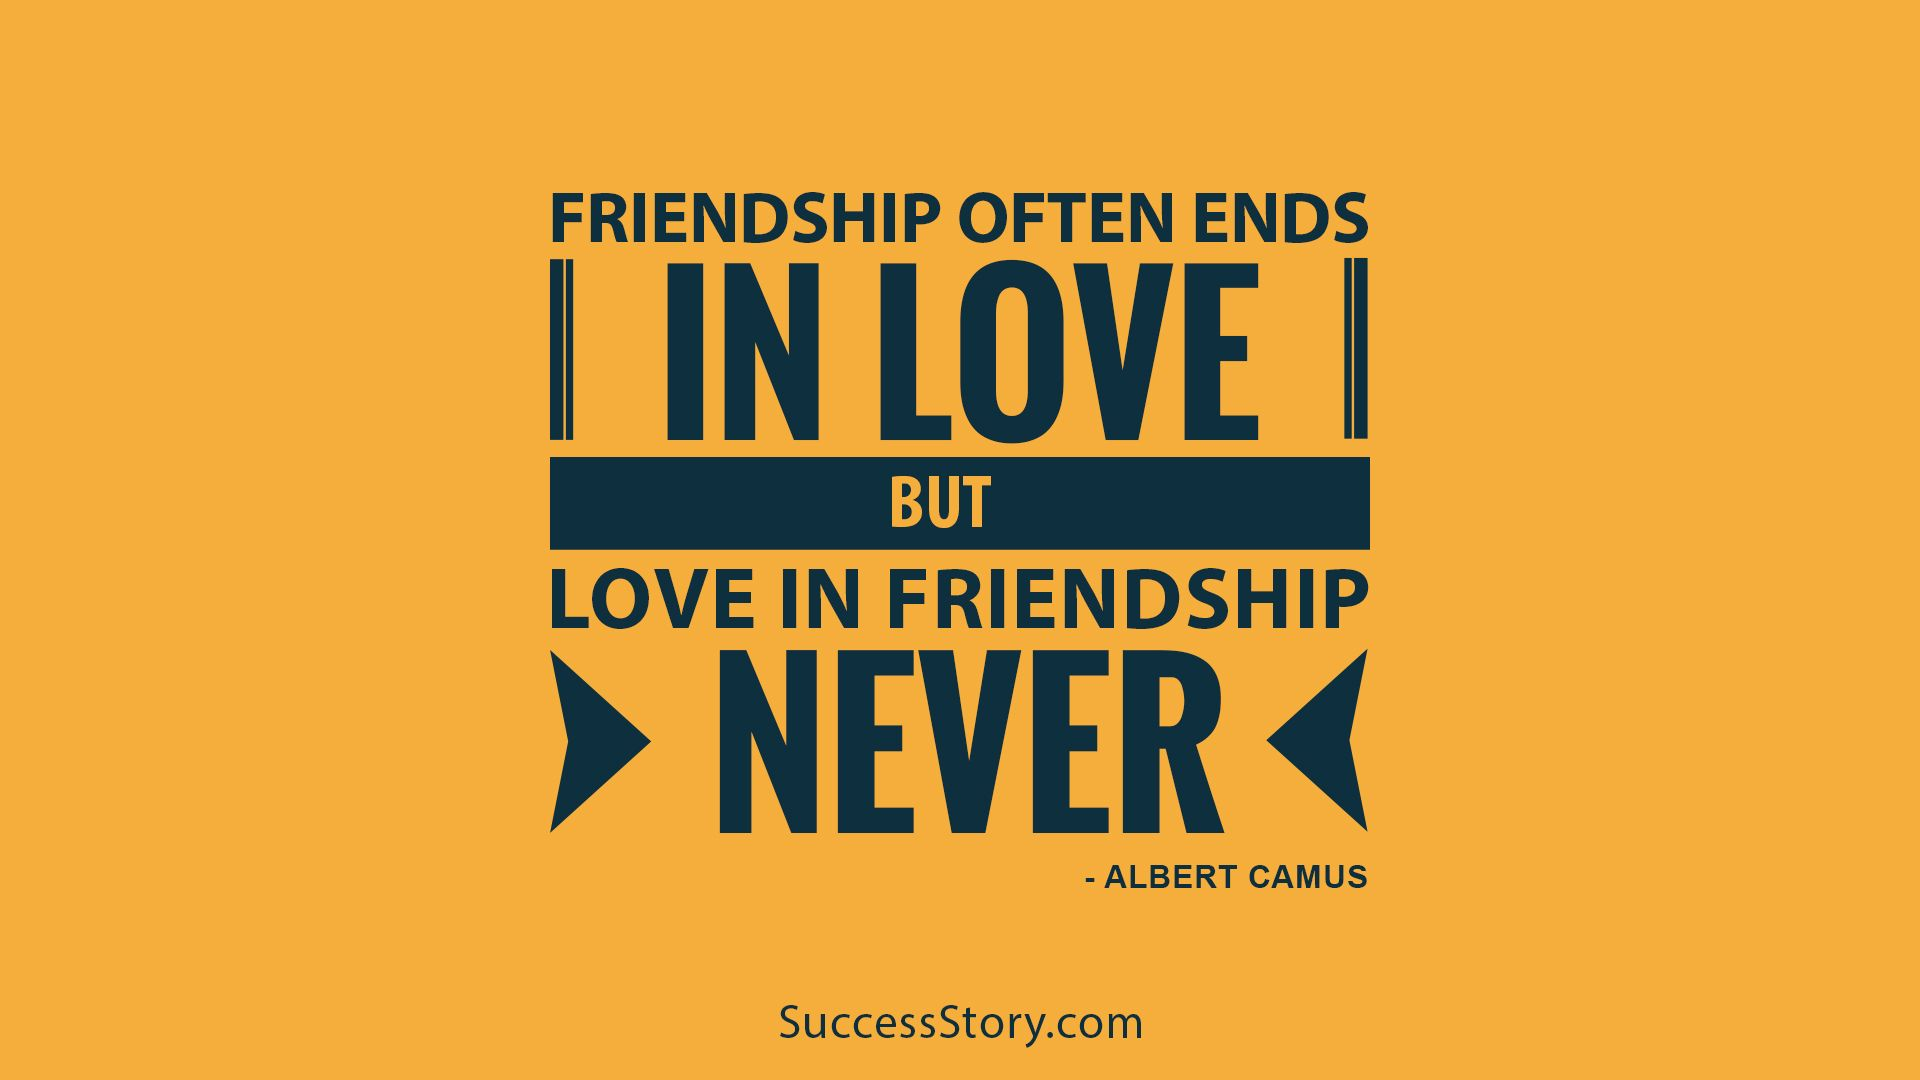 Quotes About Friendship And Love And Life Friendship Often Ends  Quotes  Pinterest  Friendship